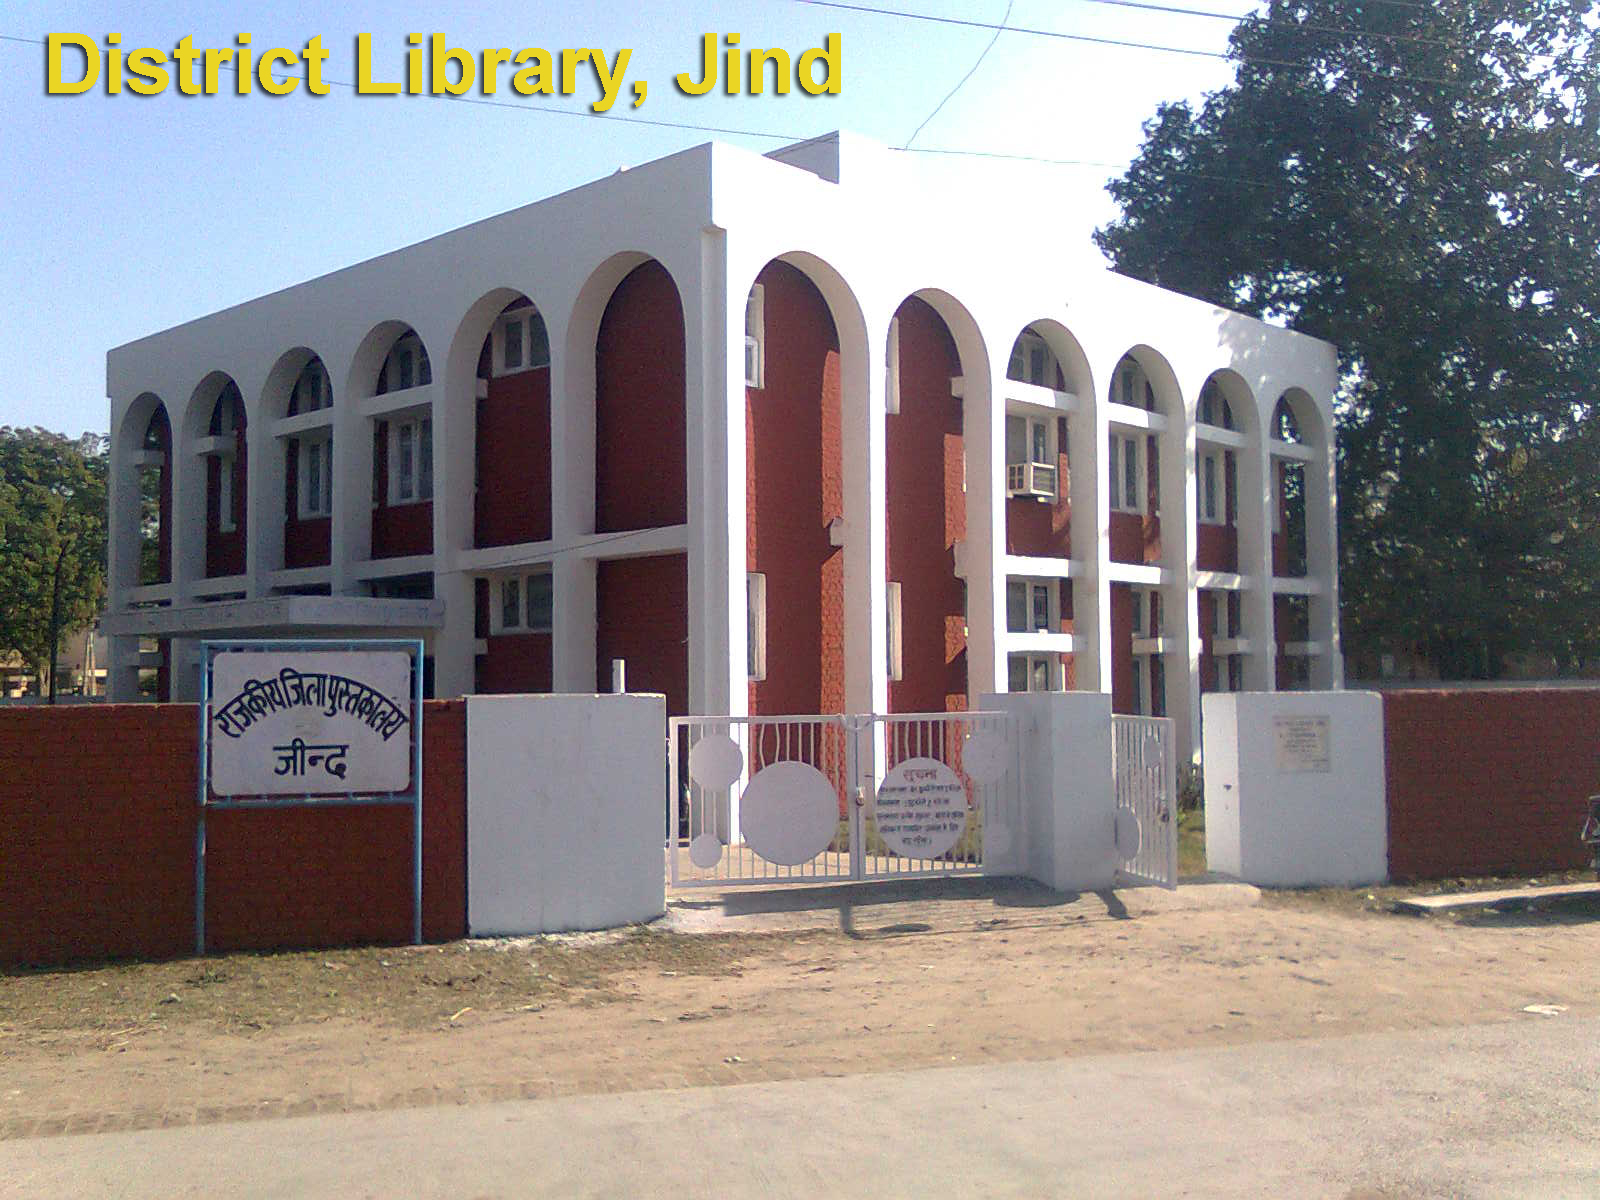 District Library Jind